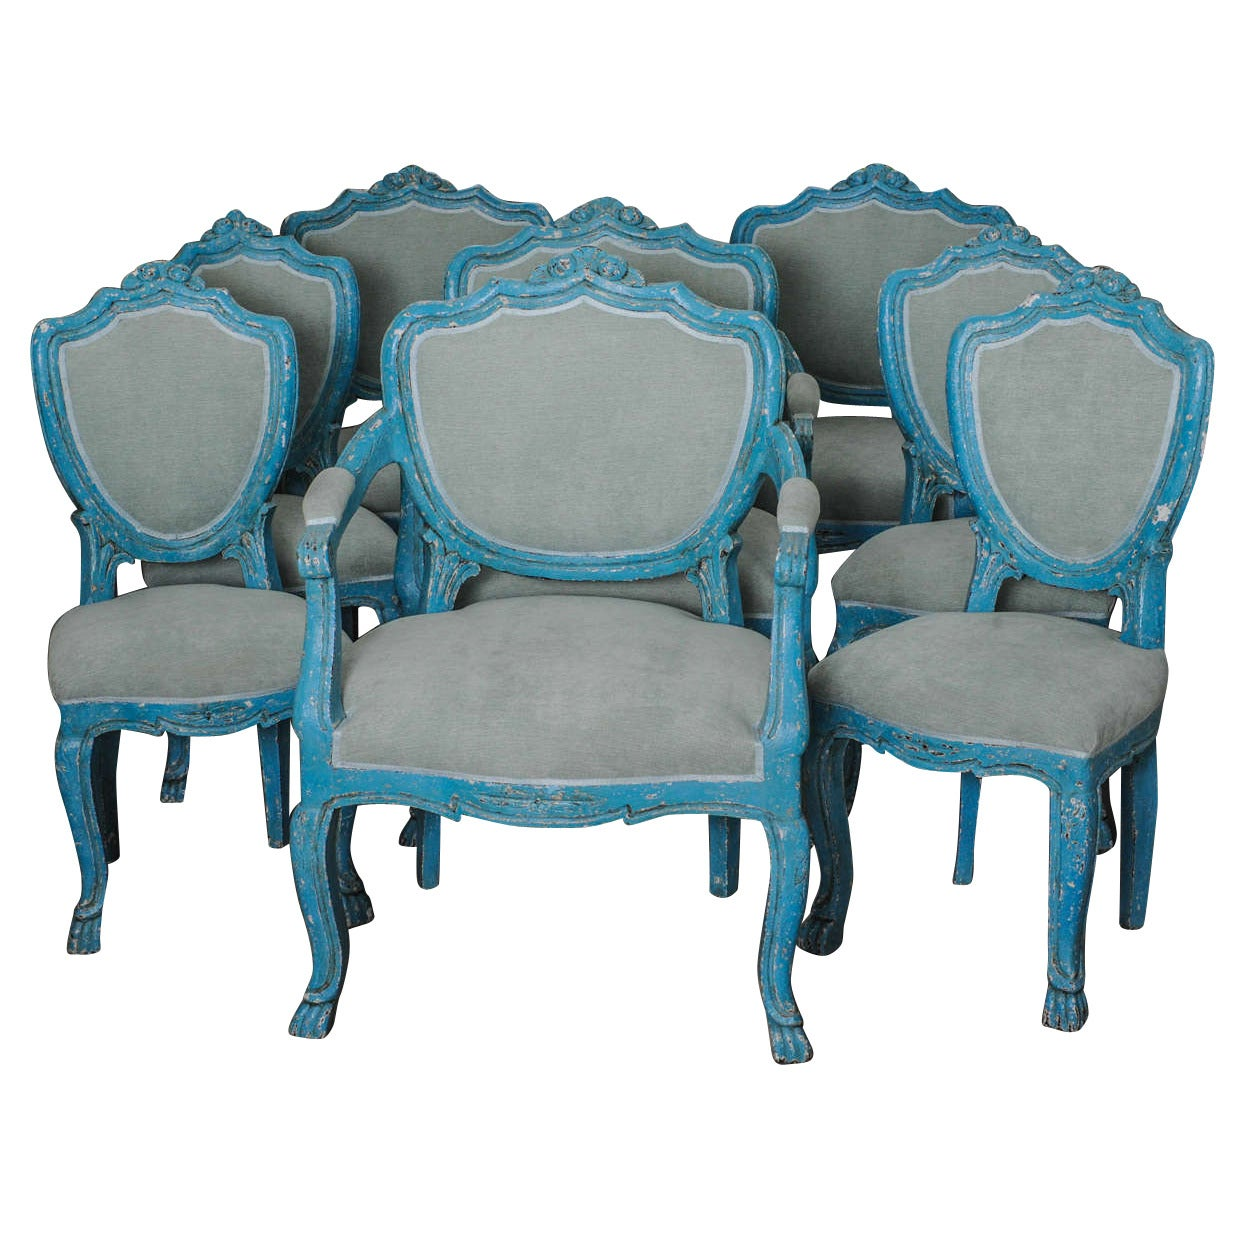 Set of 6 Antique Dining Chairs with Azure Blue Patina For Sale at ...